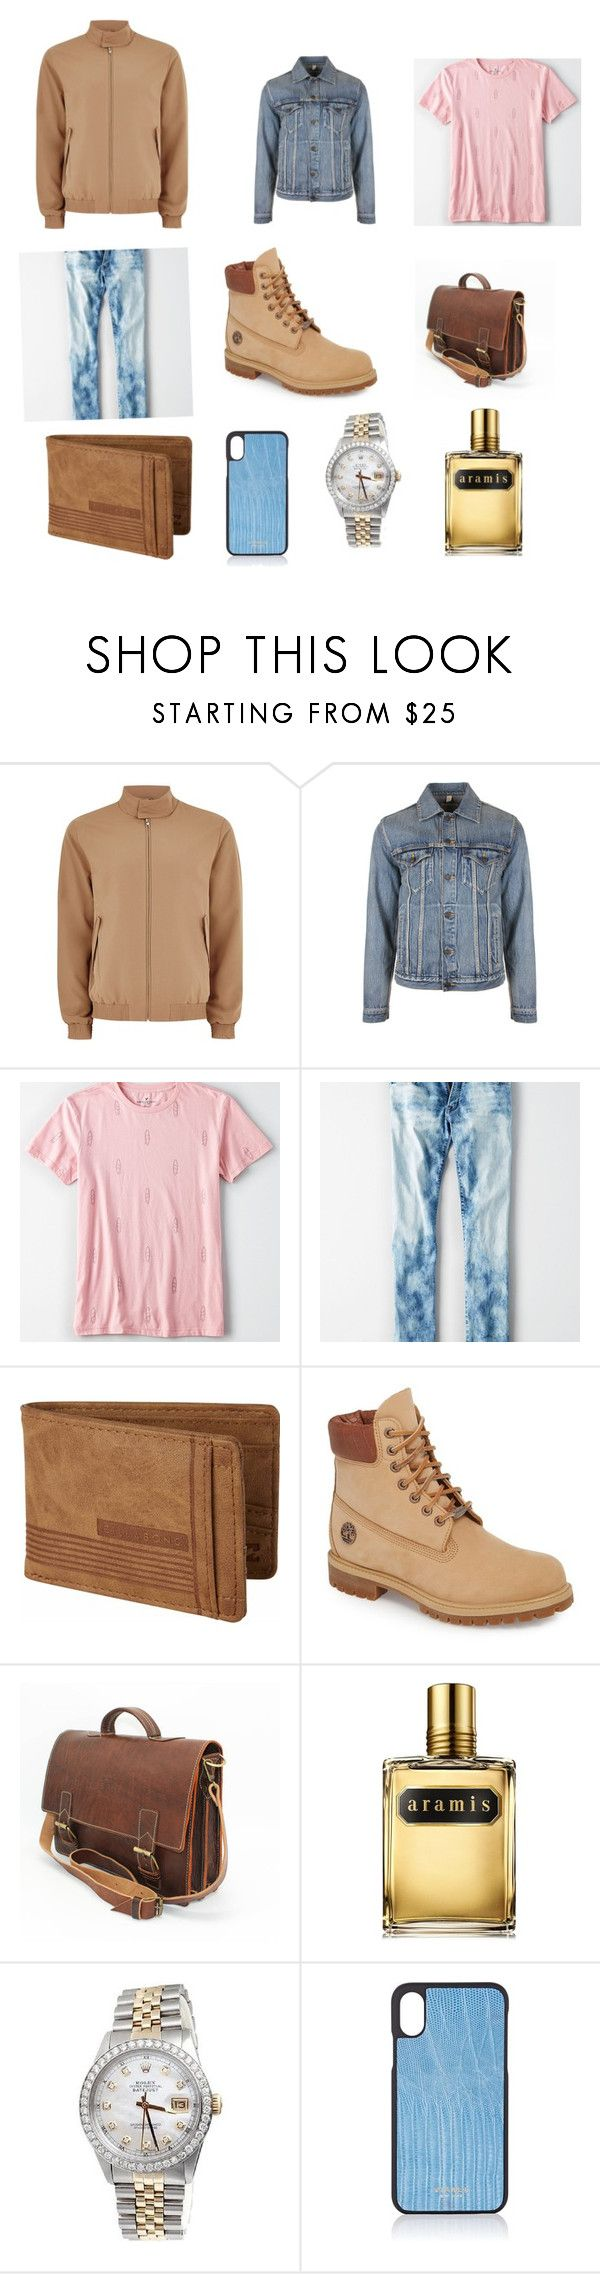 """Kai's clothes #3"" by justaailurophile ❤ liked on Polyvore featuring Topman, Kent & Curwen, American Eagle Outfitters, Billabong, Timberland, Aramis, Rolex, Vianel, men's fashion and menswear"